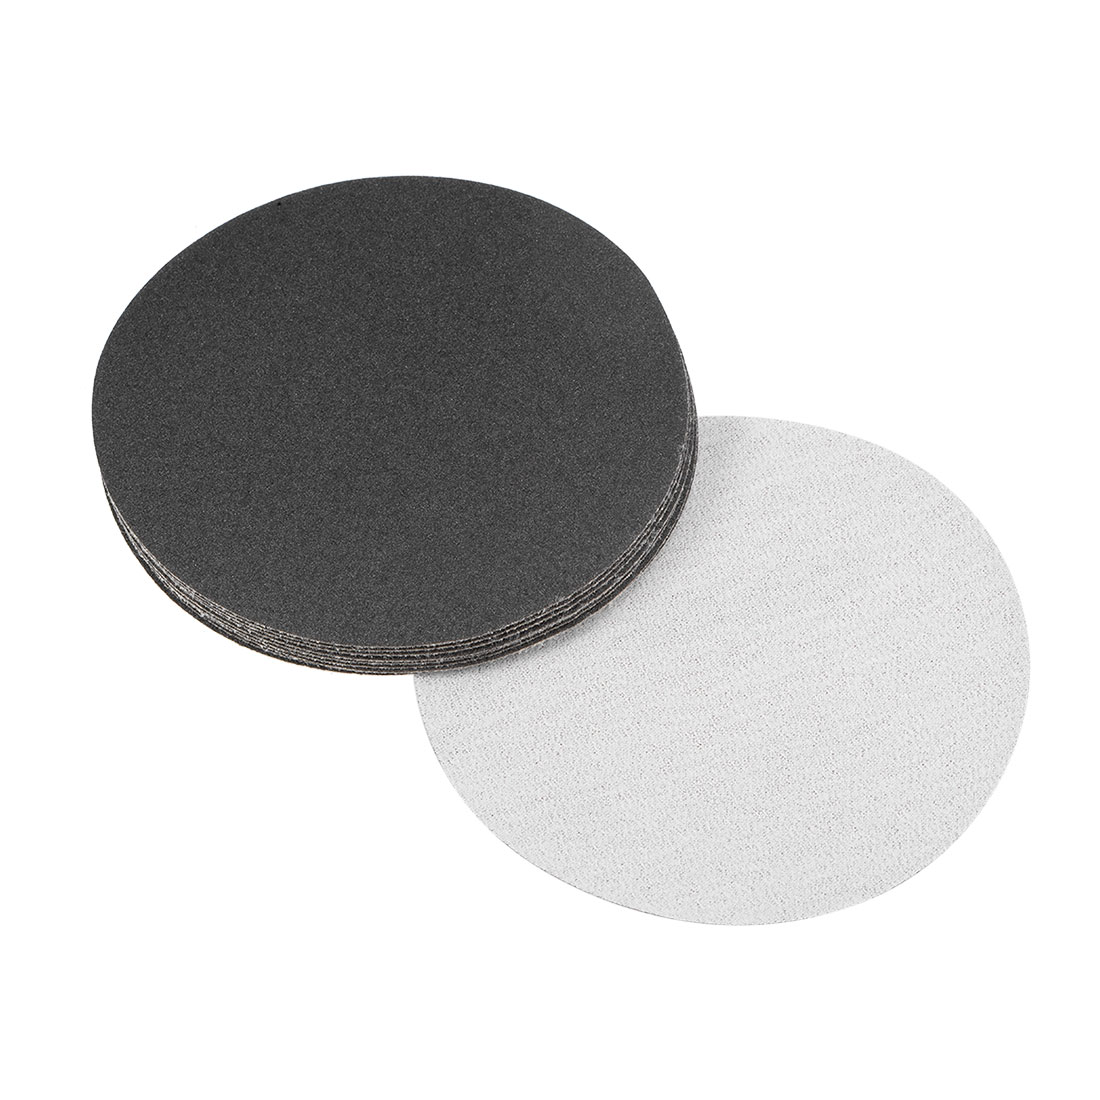 5 inch Wet Dry Discs 150 Grit Hook and Loop Sanding Disc Silicon Carbide 10pcs